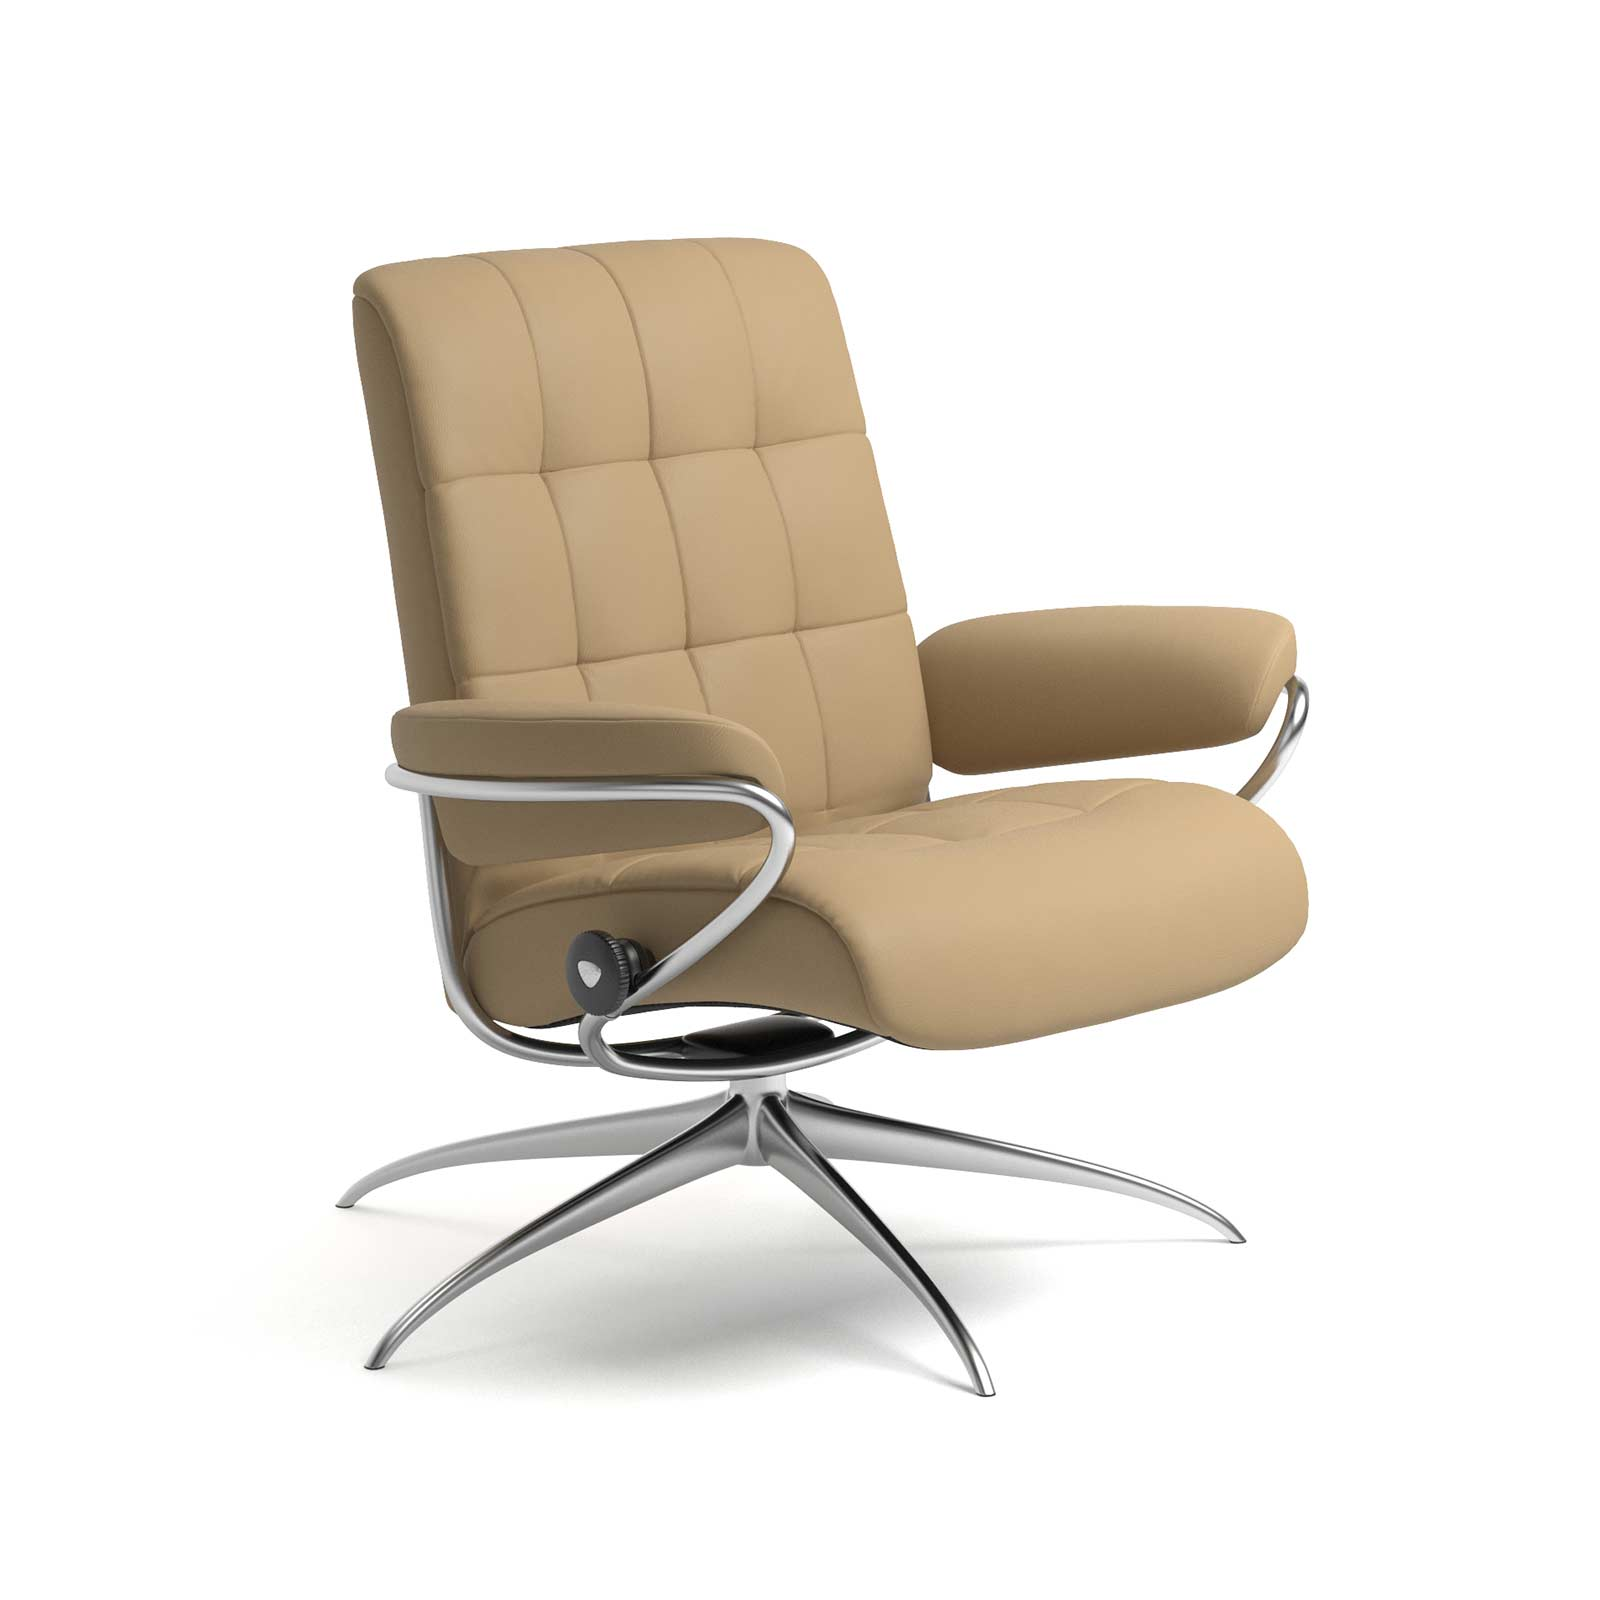 Stressless Lederfarben Stressless Sessel London Niedrige Lehne Paloma Sand